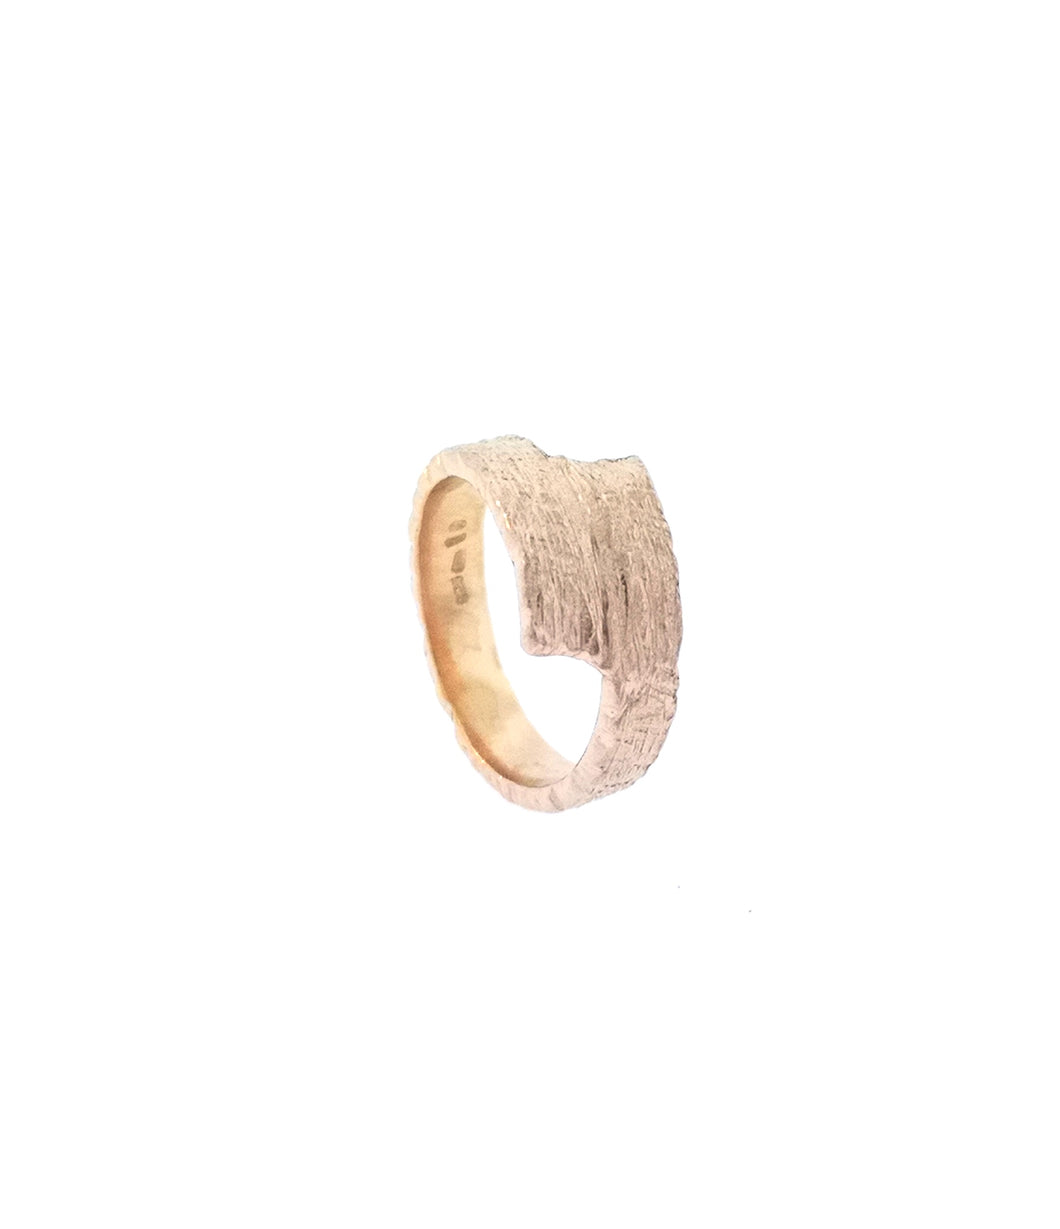 Driftwood Wrap Over Ring - Rose Gold Plated